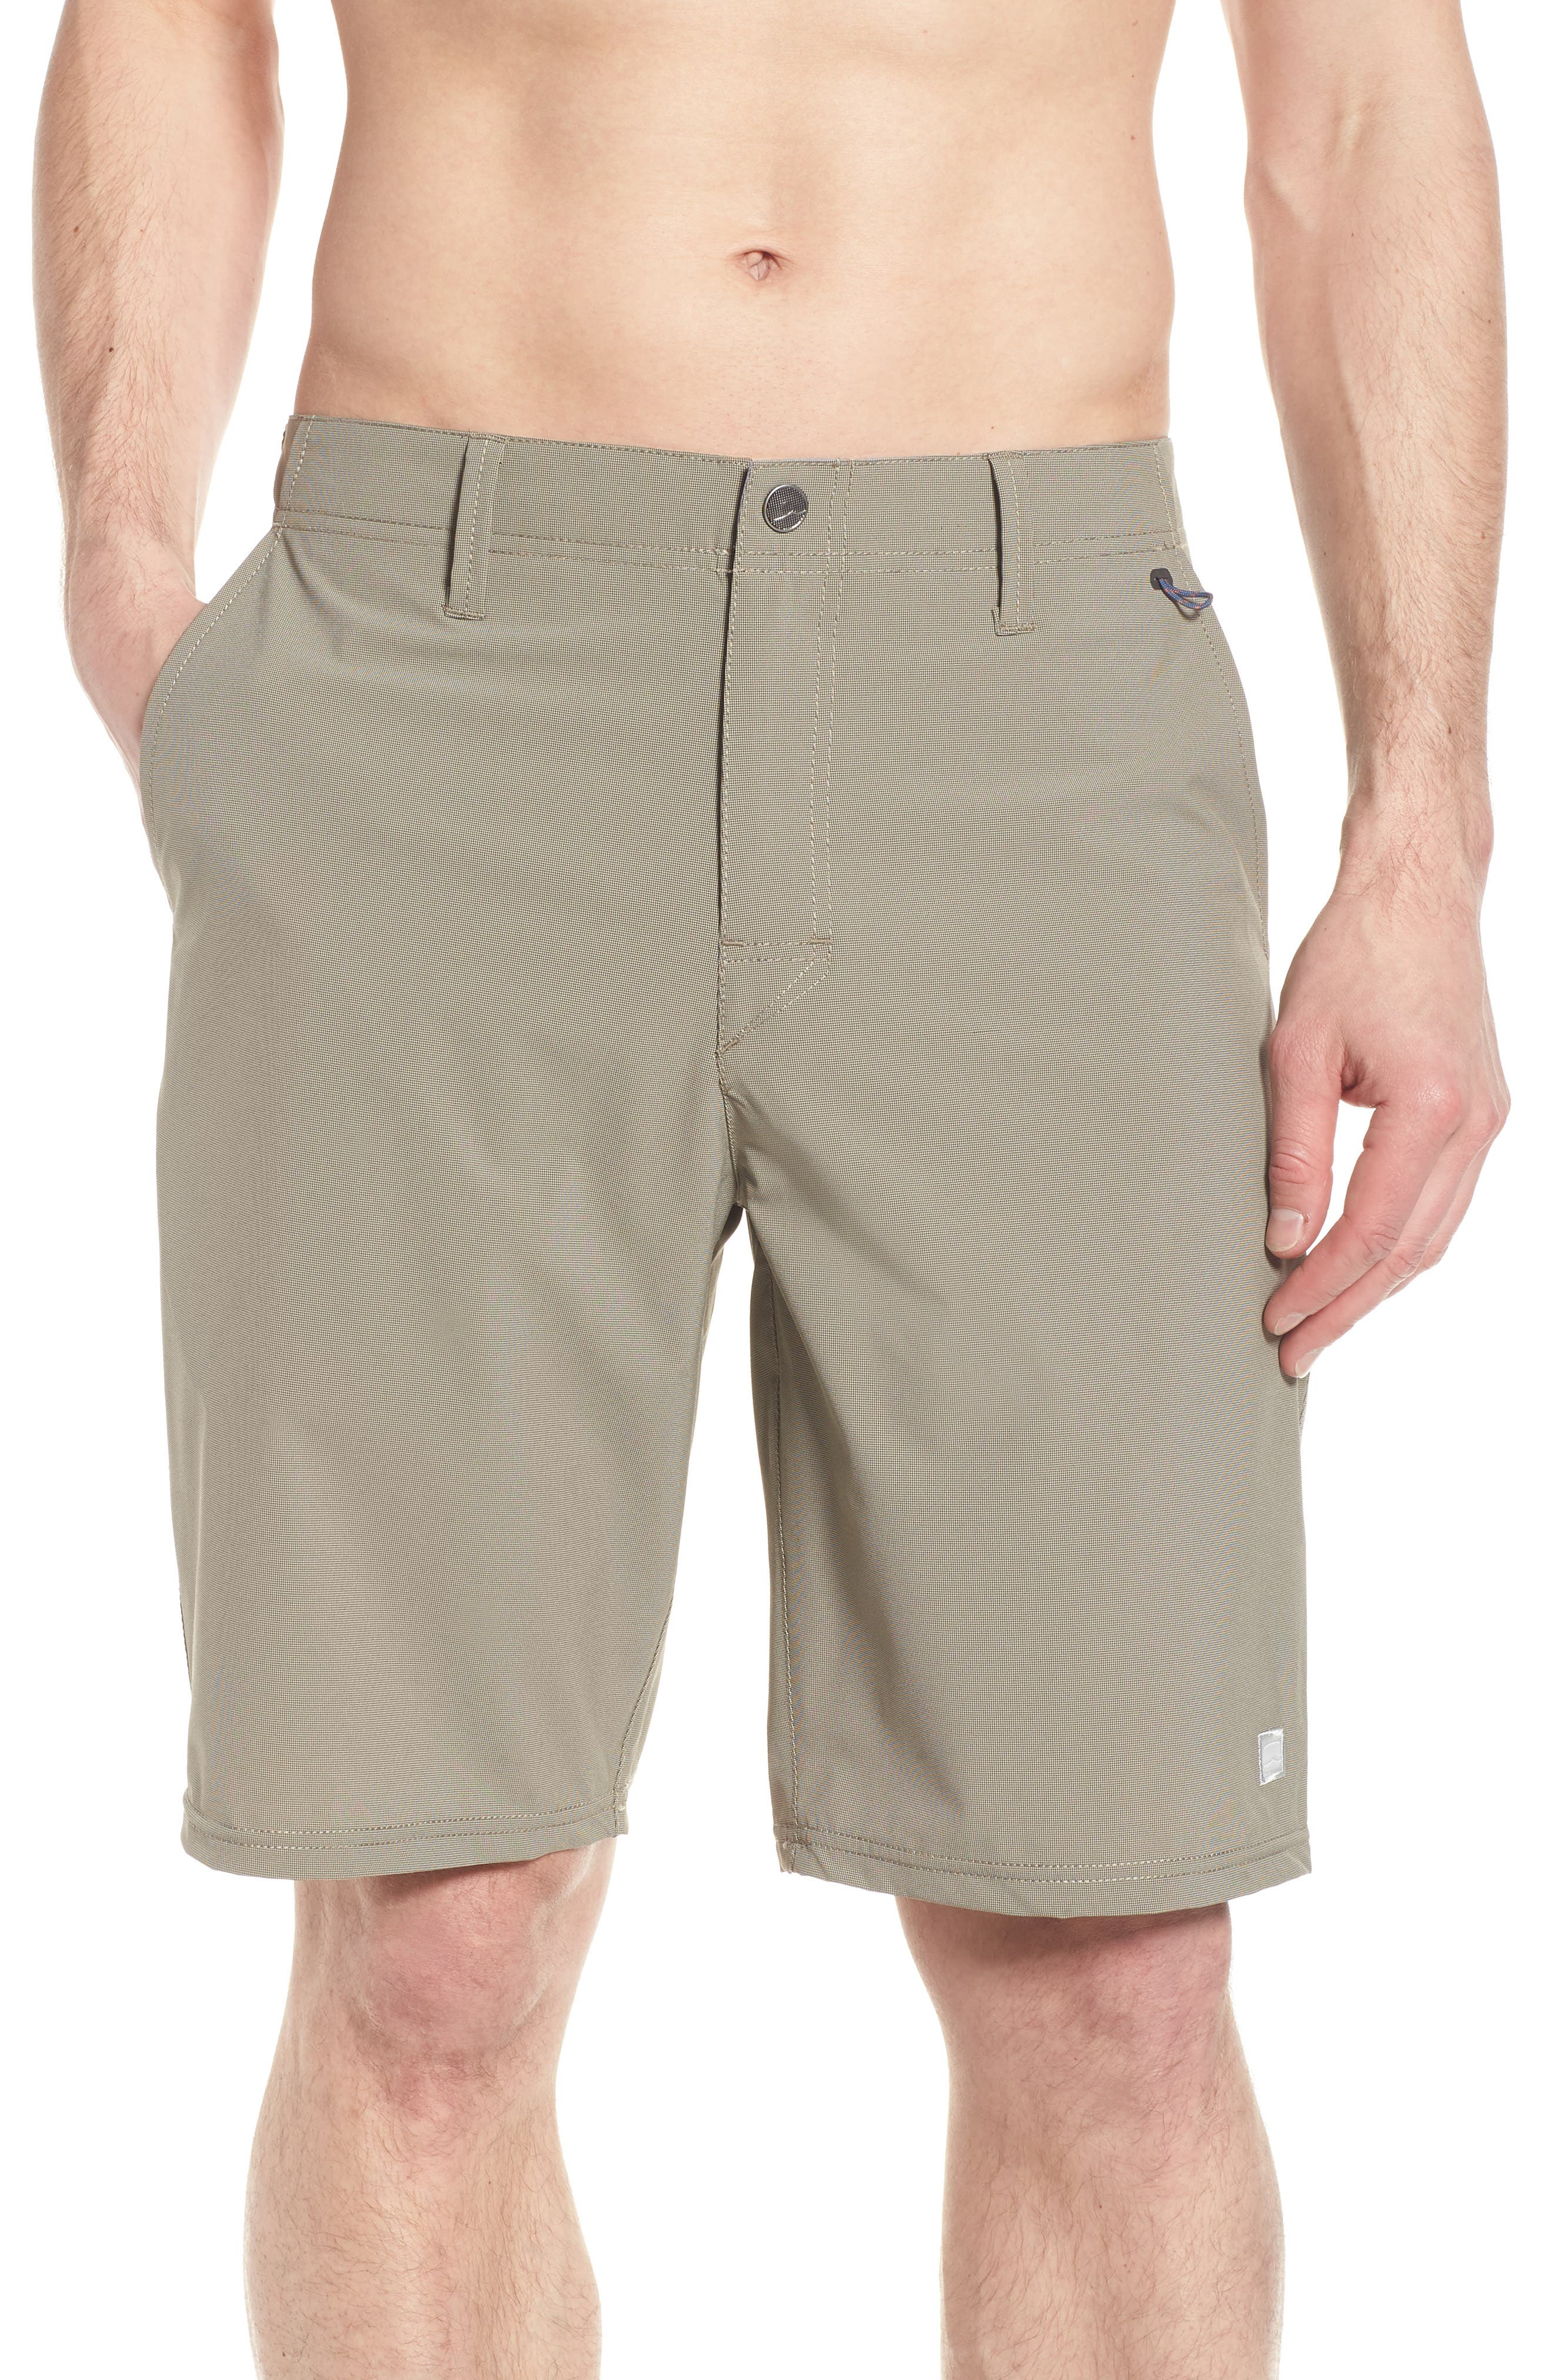 Seaside Hybrid Shorts,                             Alternate thumbnail 4, color,                             Espresso